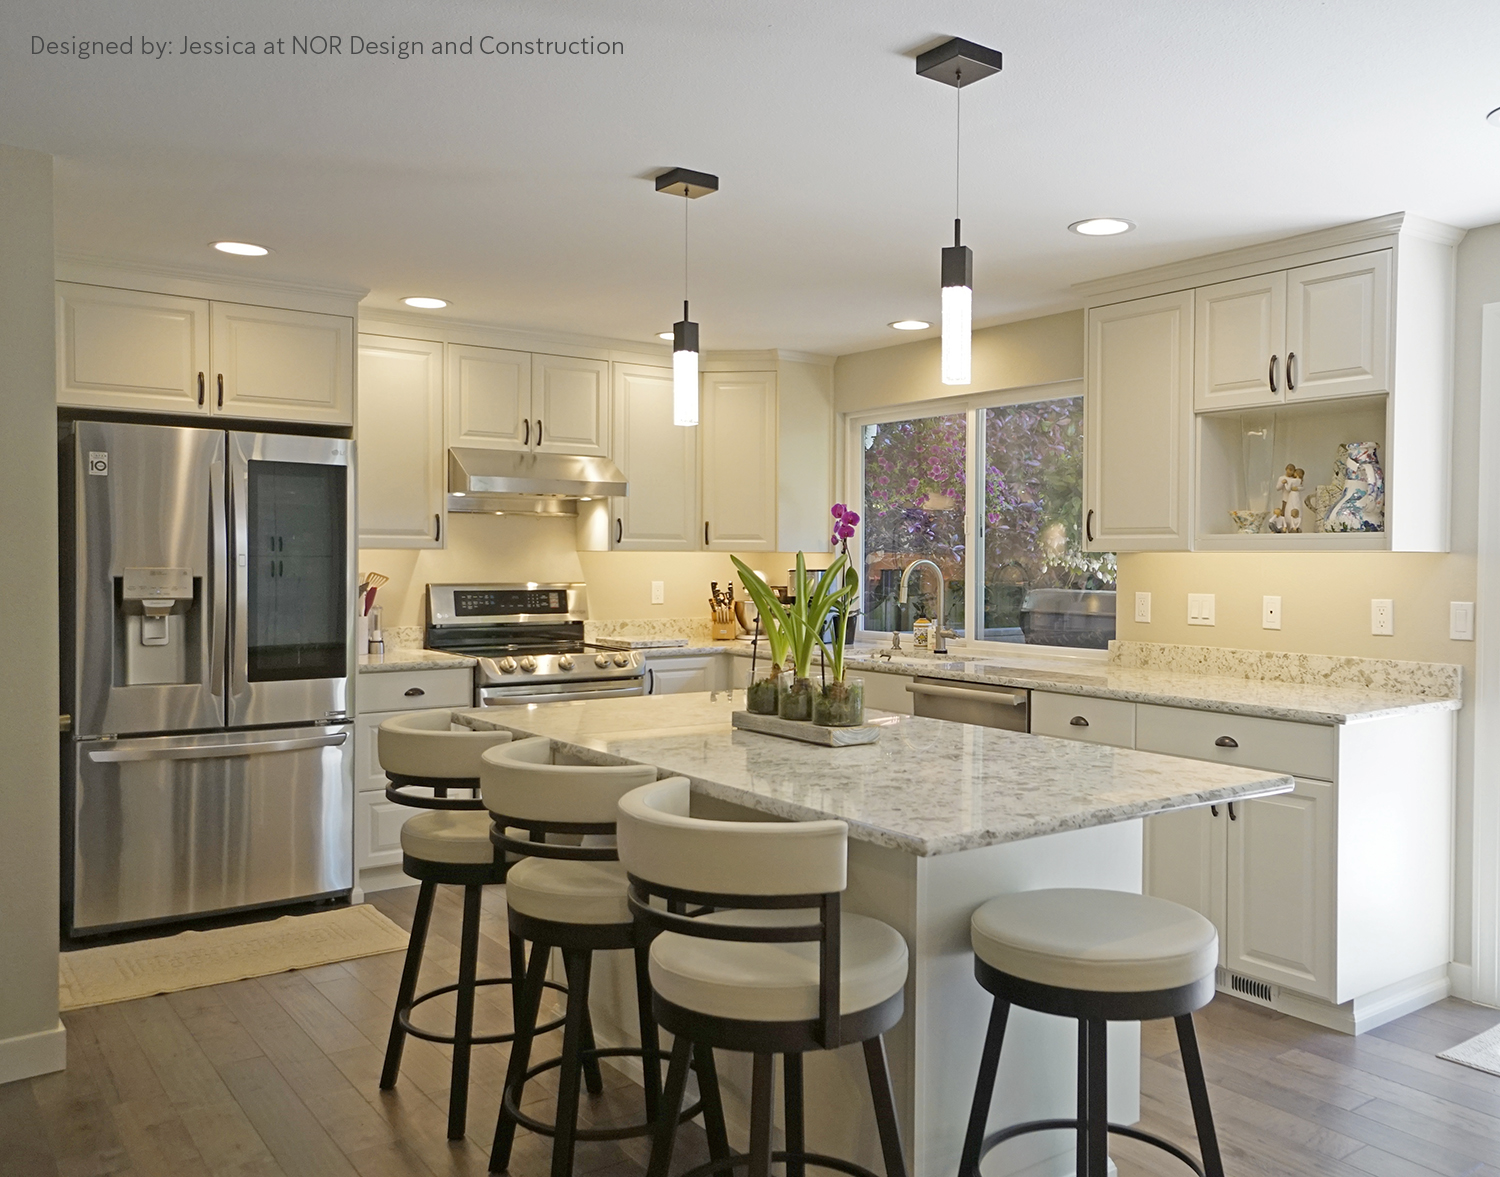 Seattle Kitchen Design by Nor Design and Construction